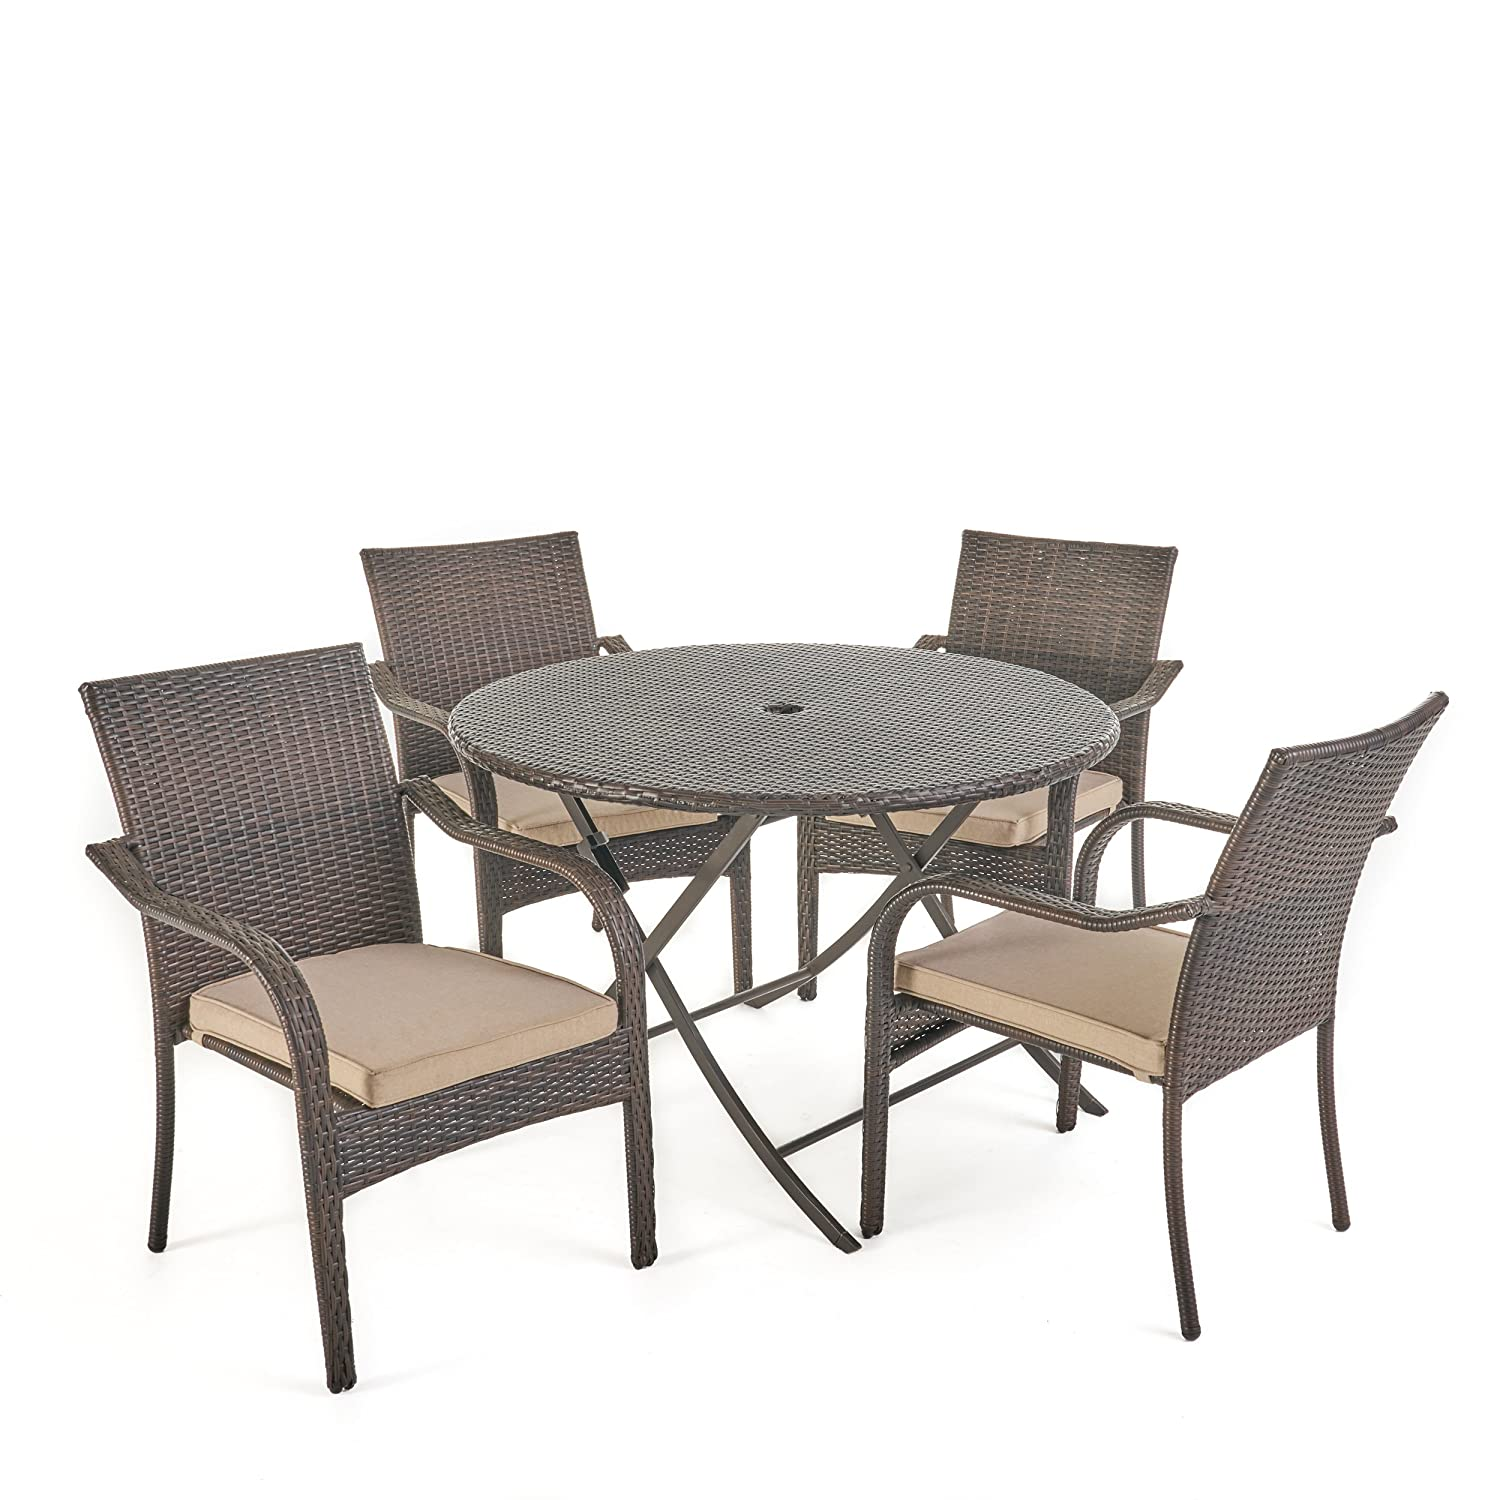 Amazon com toluca patio furniture 5 piece outdoor dining set folding table and stacking chairs premium wicker water resistant cushions in textured